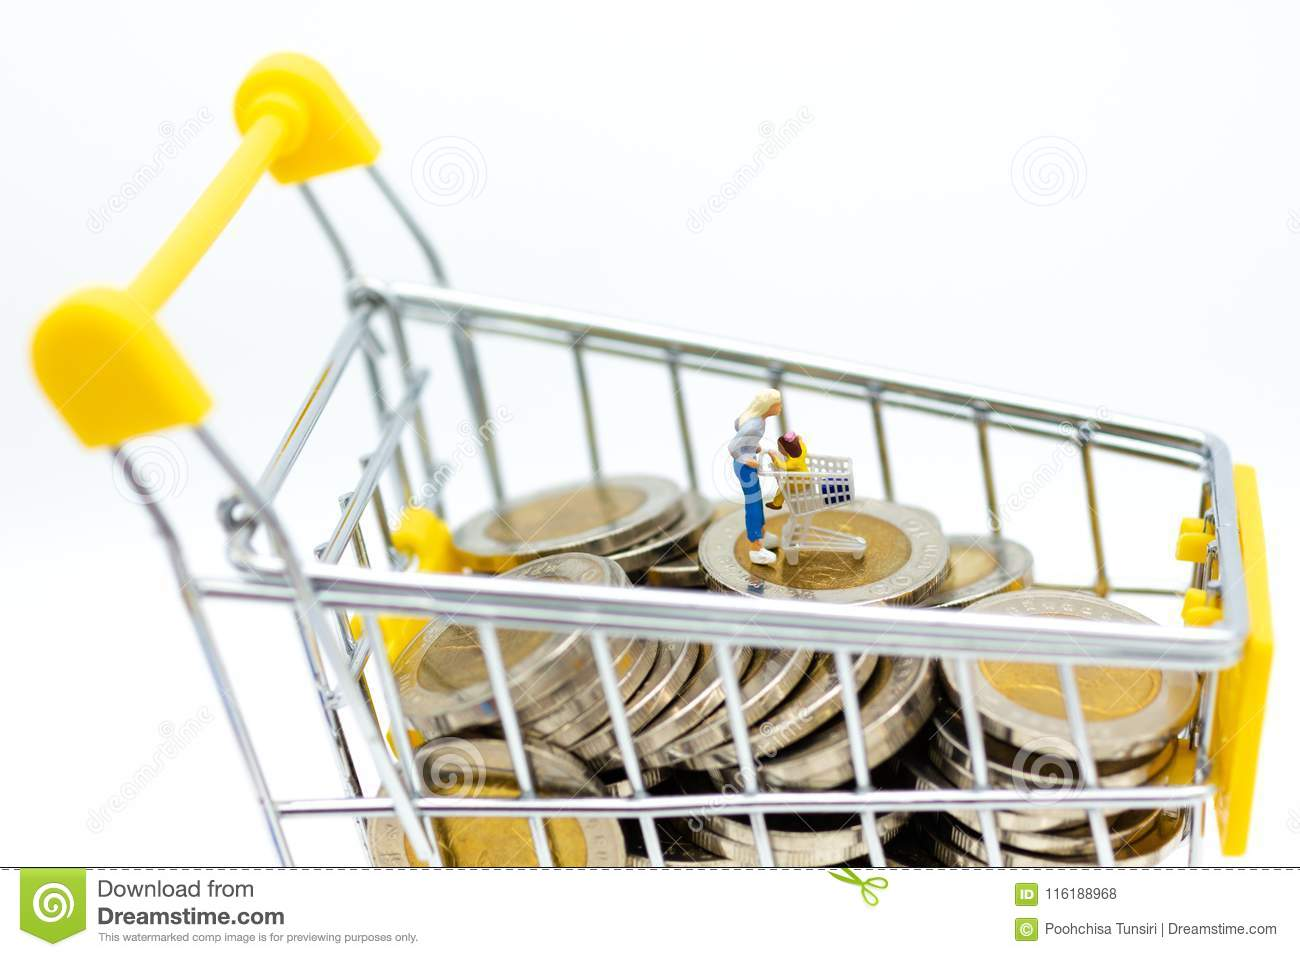 Miniature people : Shoppers with shopping cart on stack of coin. Image use for retail business concept